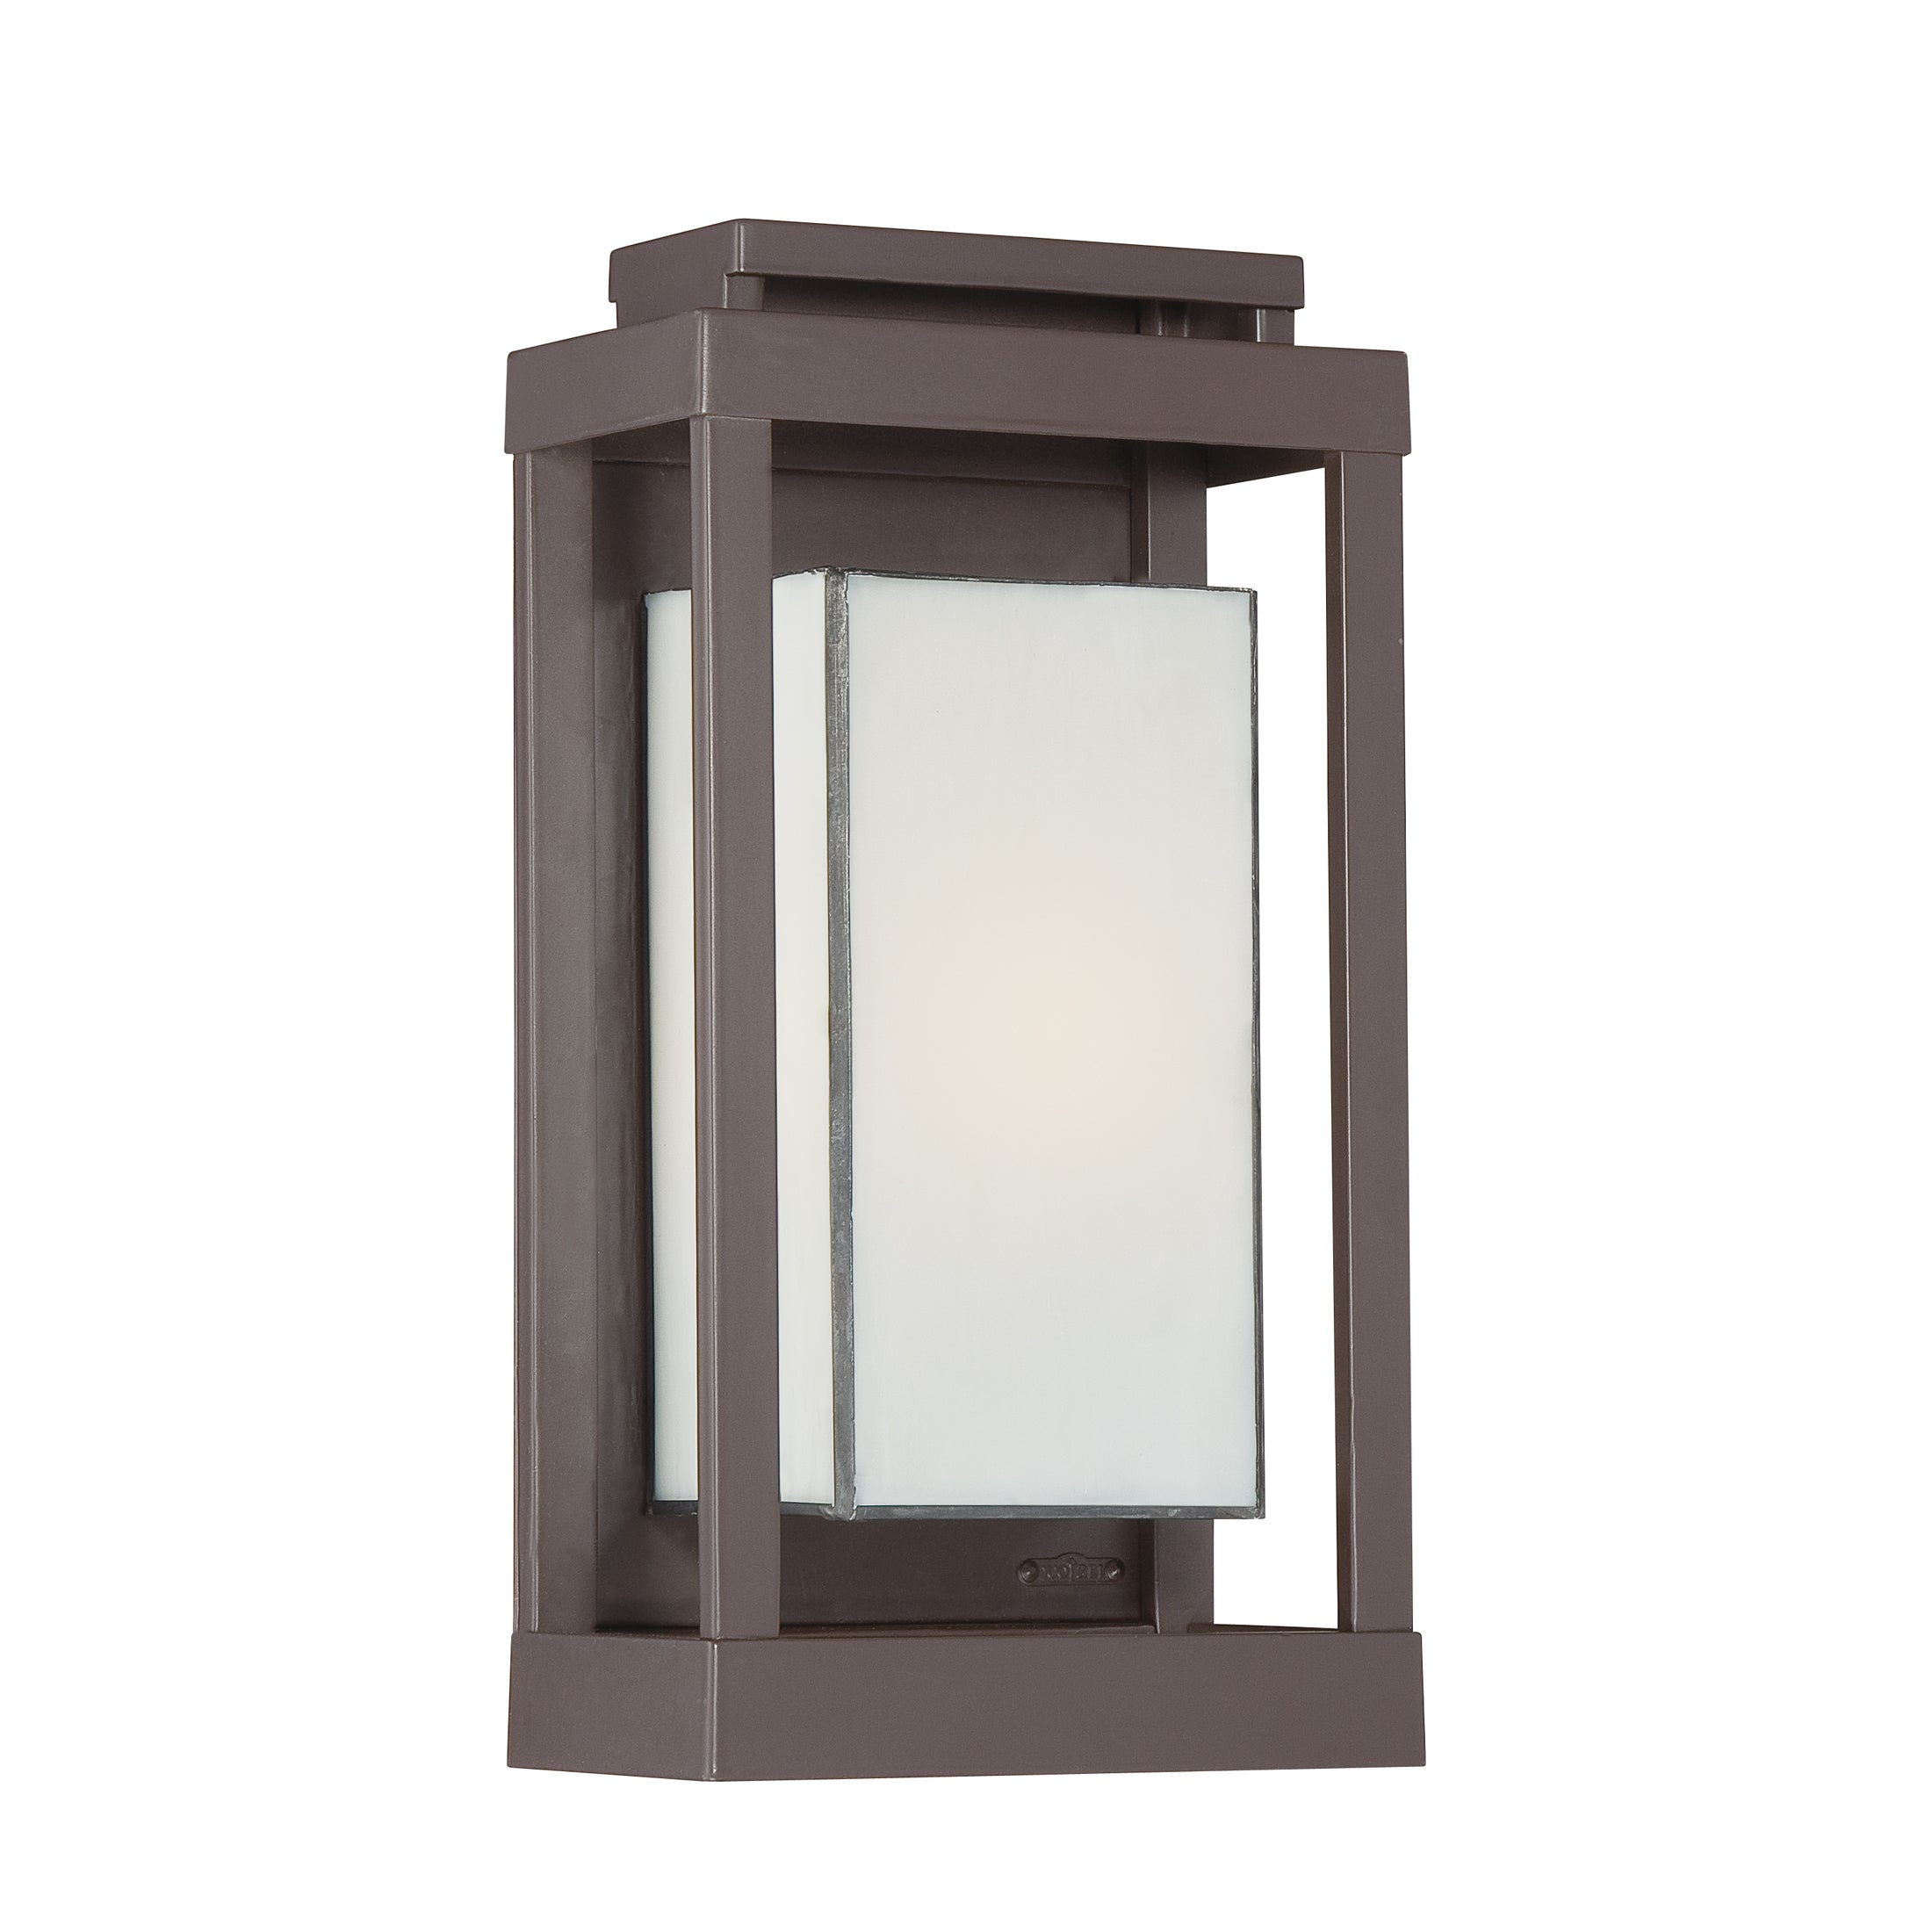 Quoizel Powell 1-light Western Bronze Outdoor Wall Sconce  sc 1 st  Overstock.com & Shop Quoizel Powell 1-light Western Bronze Outdoor Wall Sconce ...